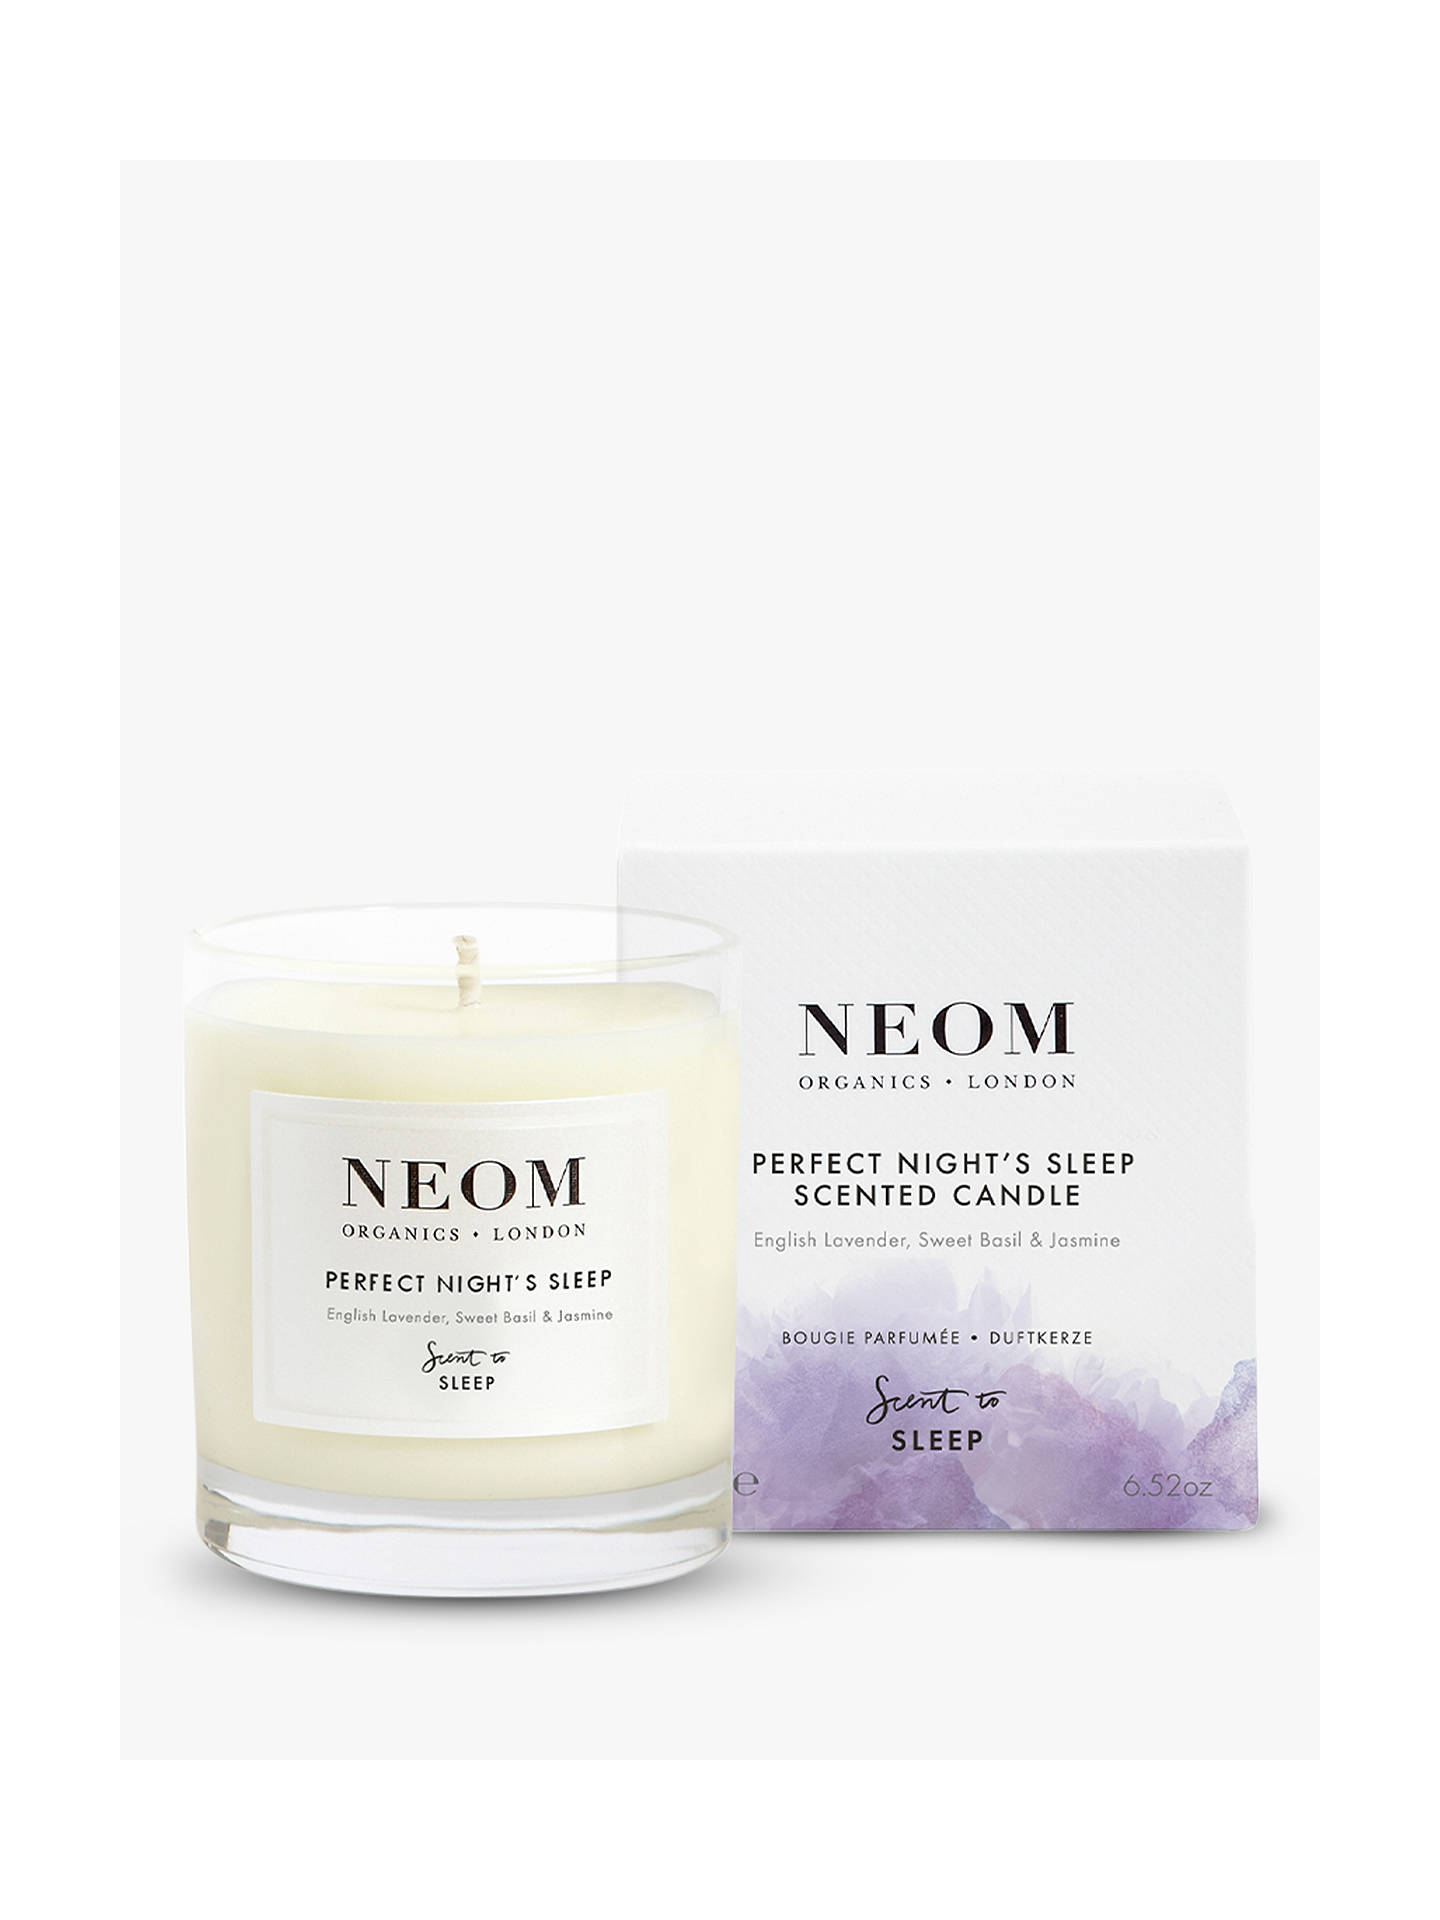 Buy Neom Organics London Tranquility Standard Scented Candle Online at johnlewis.com